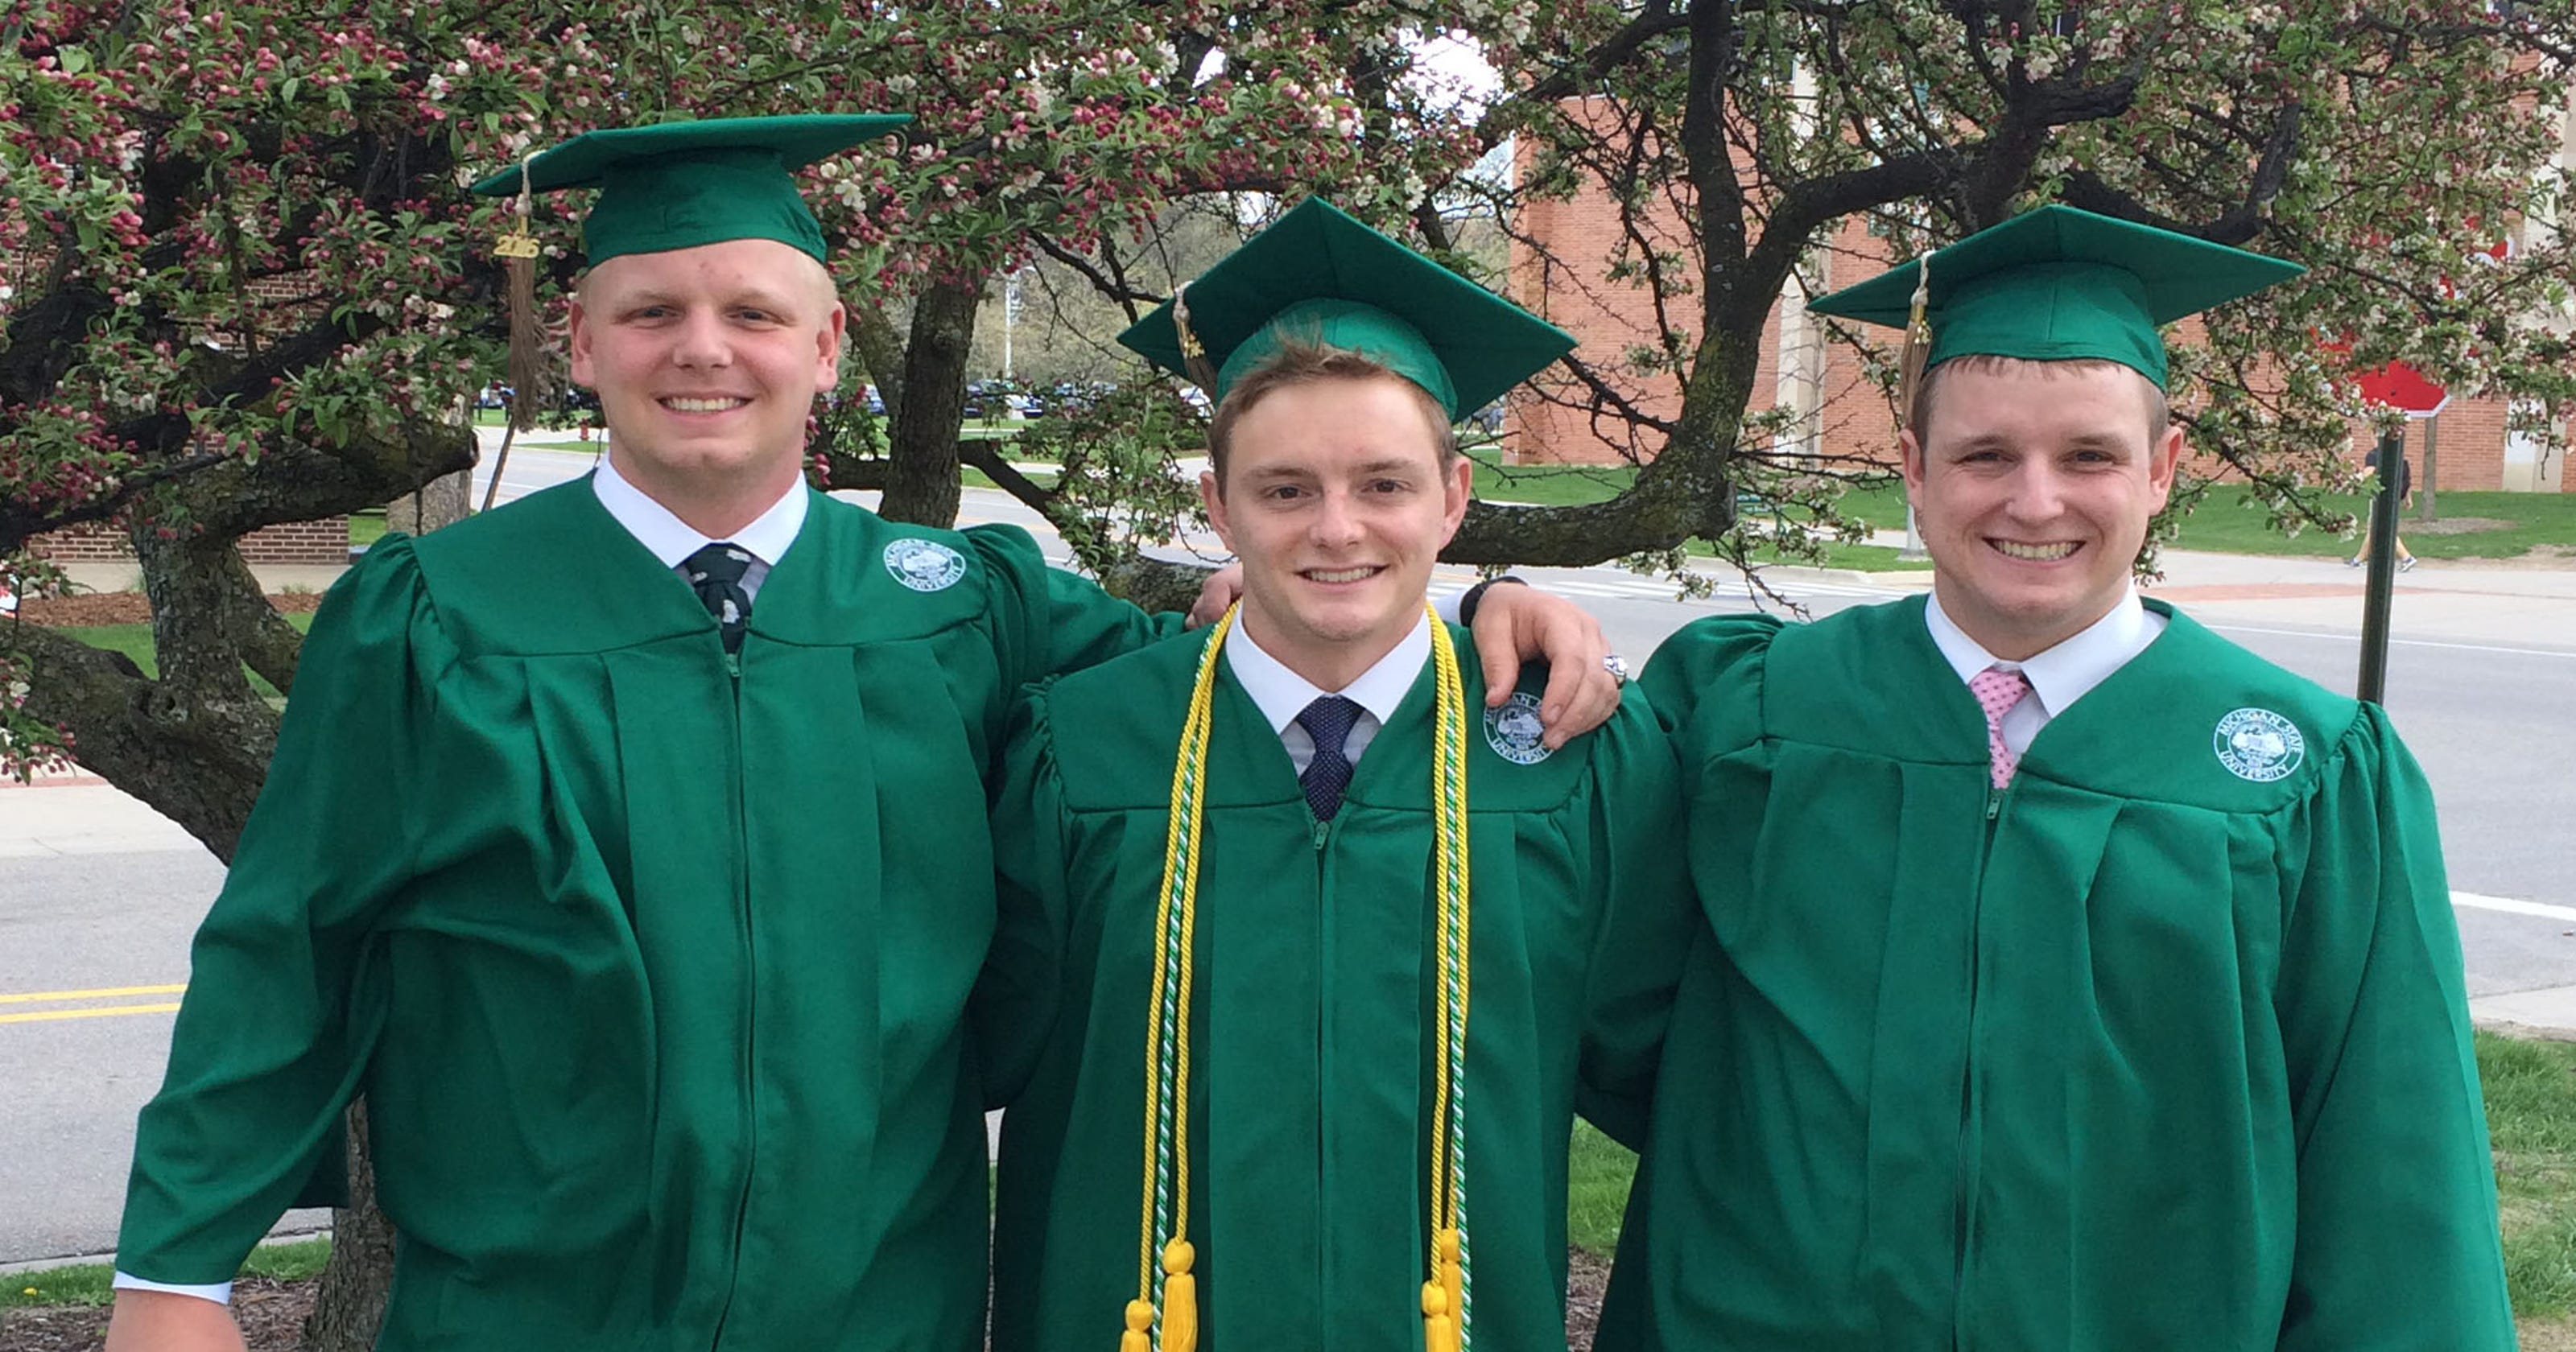 Triplets carry on family tradition with degrees from MSU